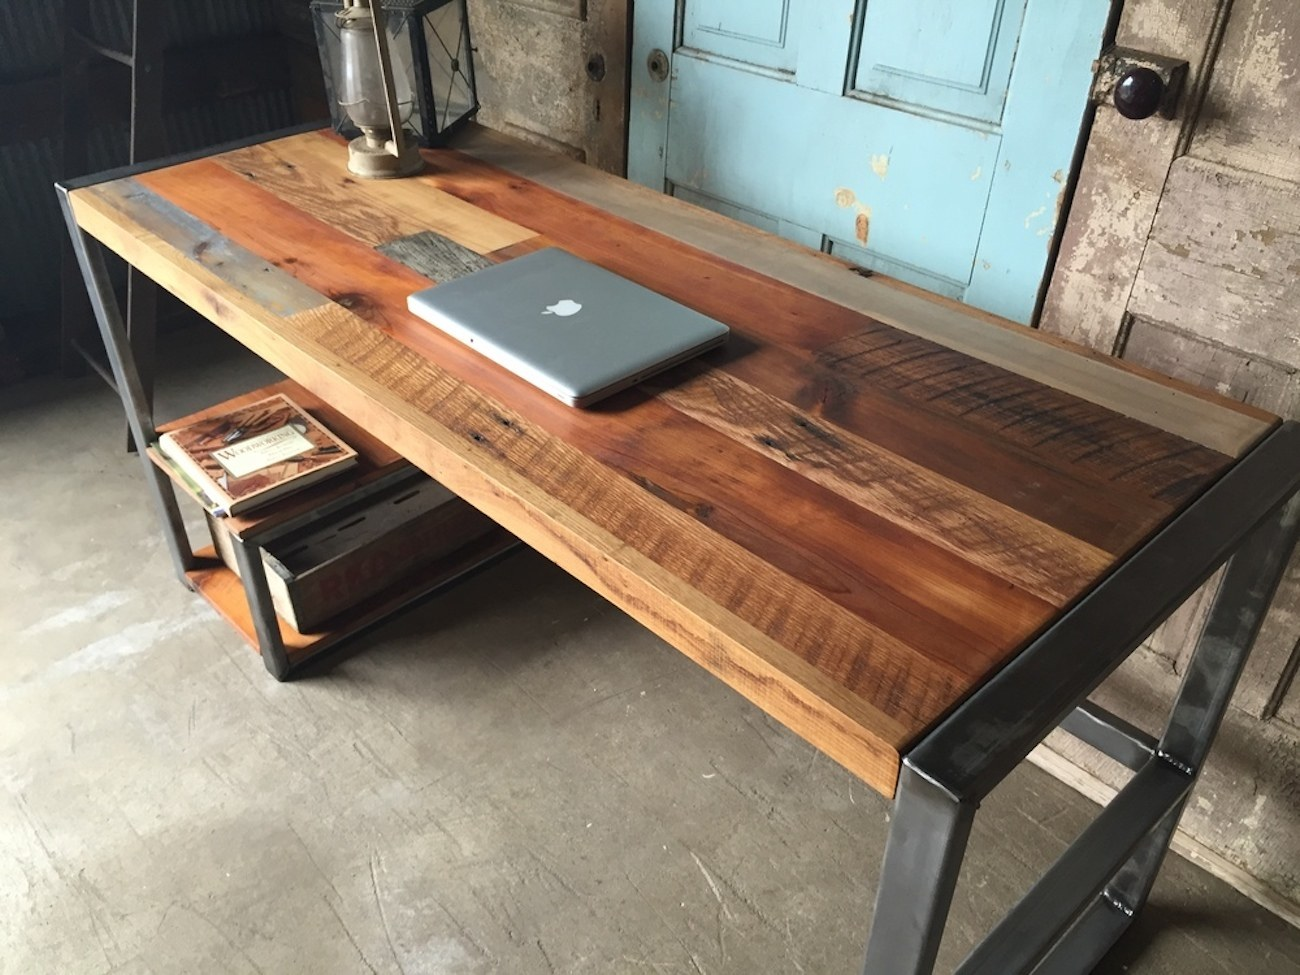 Reclaimed Wood Patchwork Desk » Gadget Flow